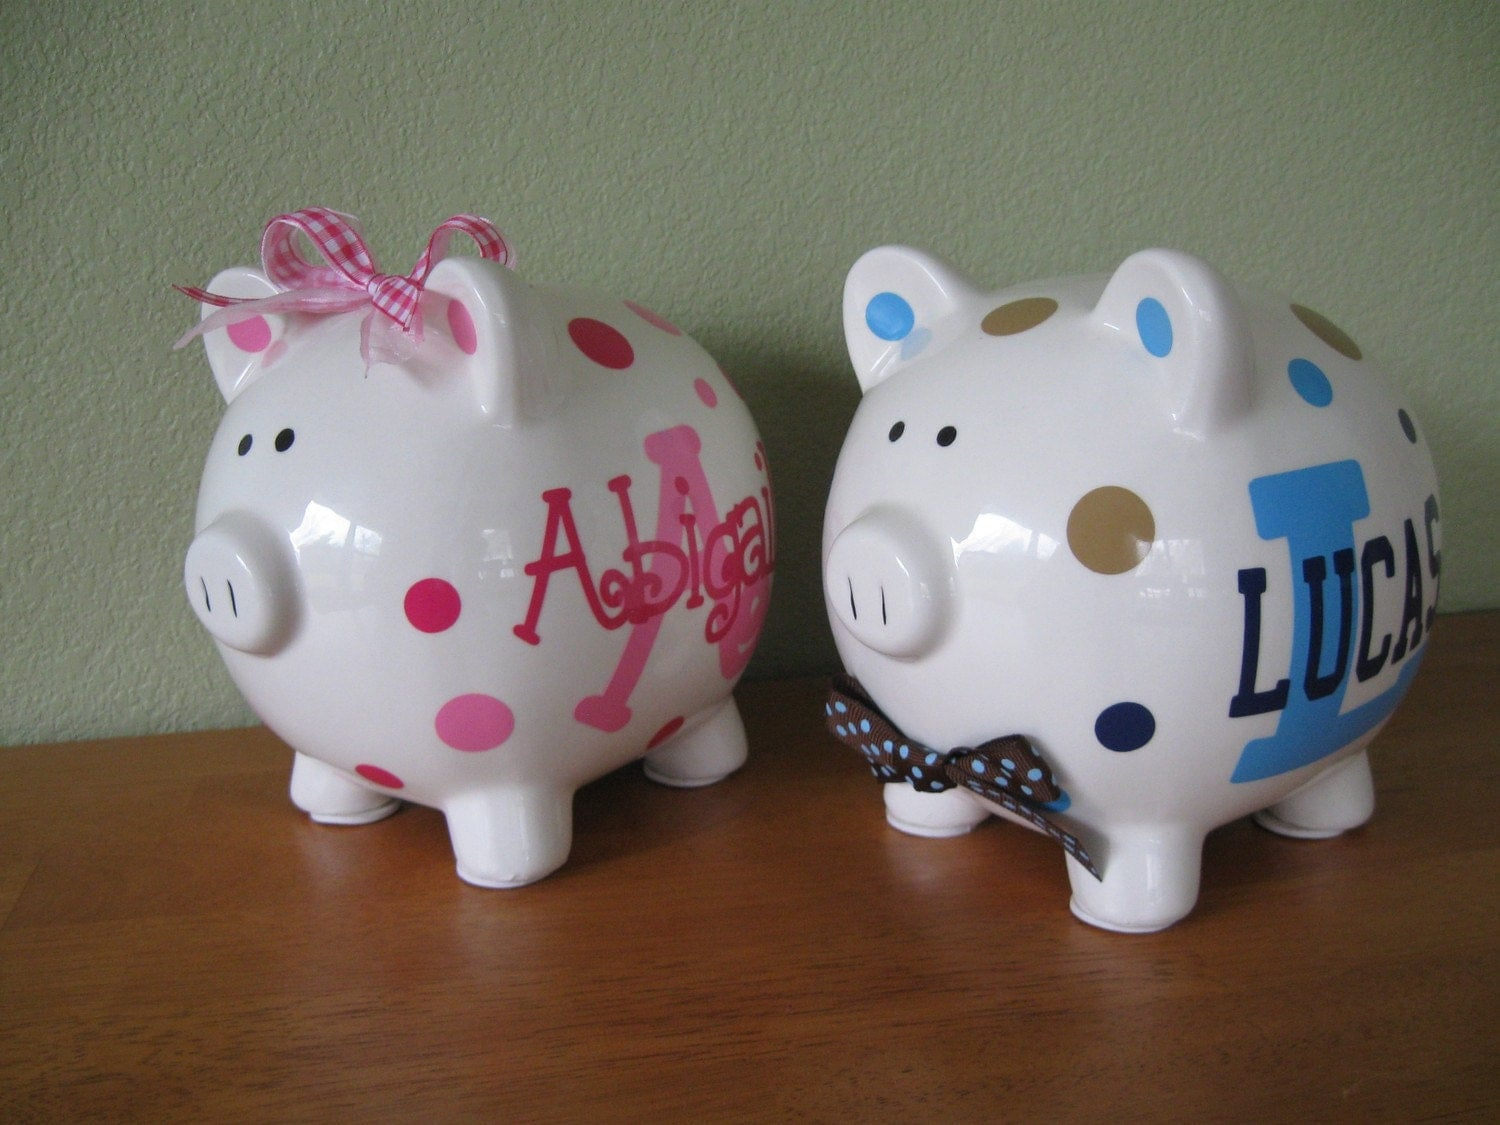 Piggy Bank Personalized Ceramic Piggy Bank By Deladesign